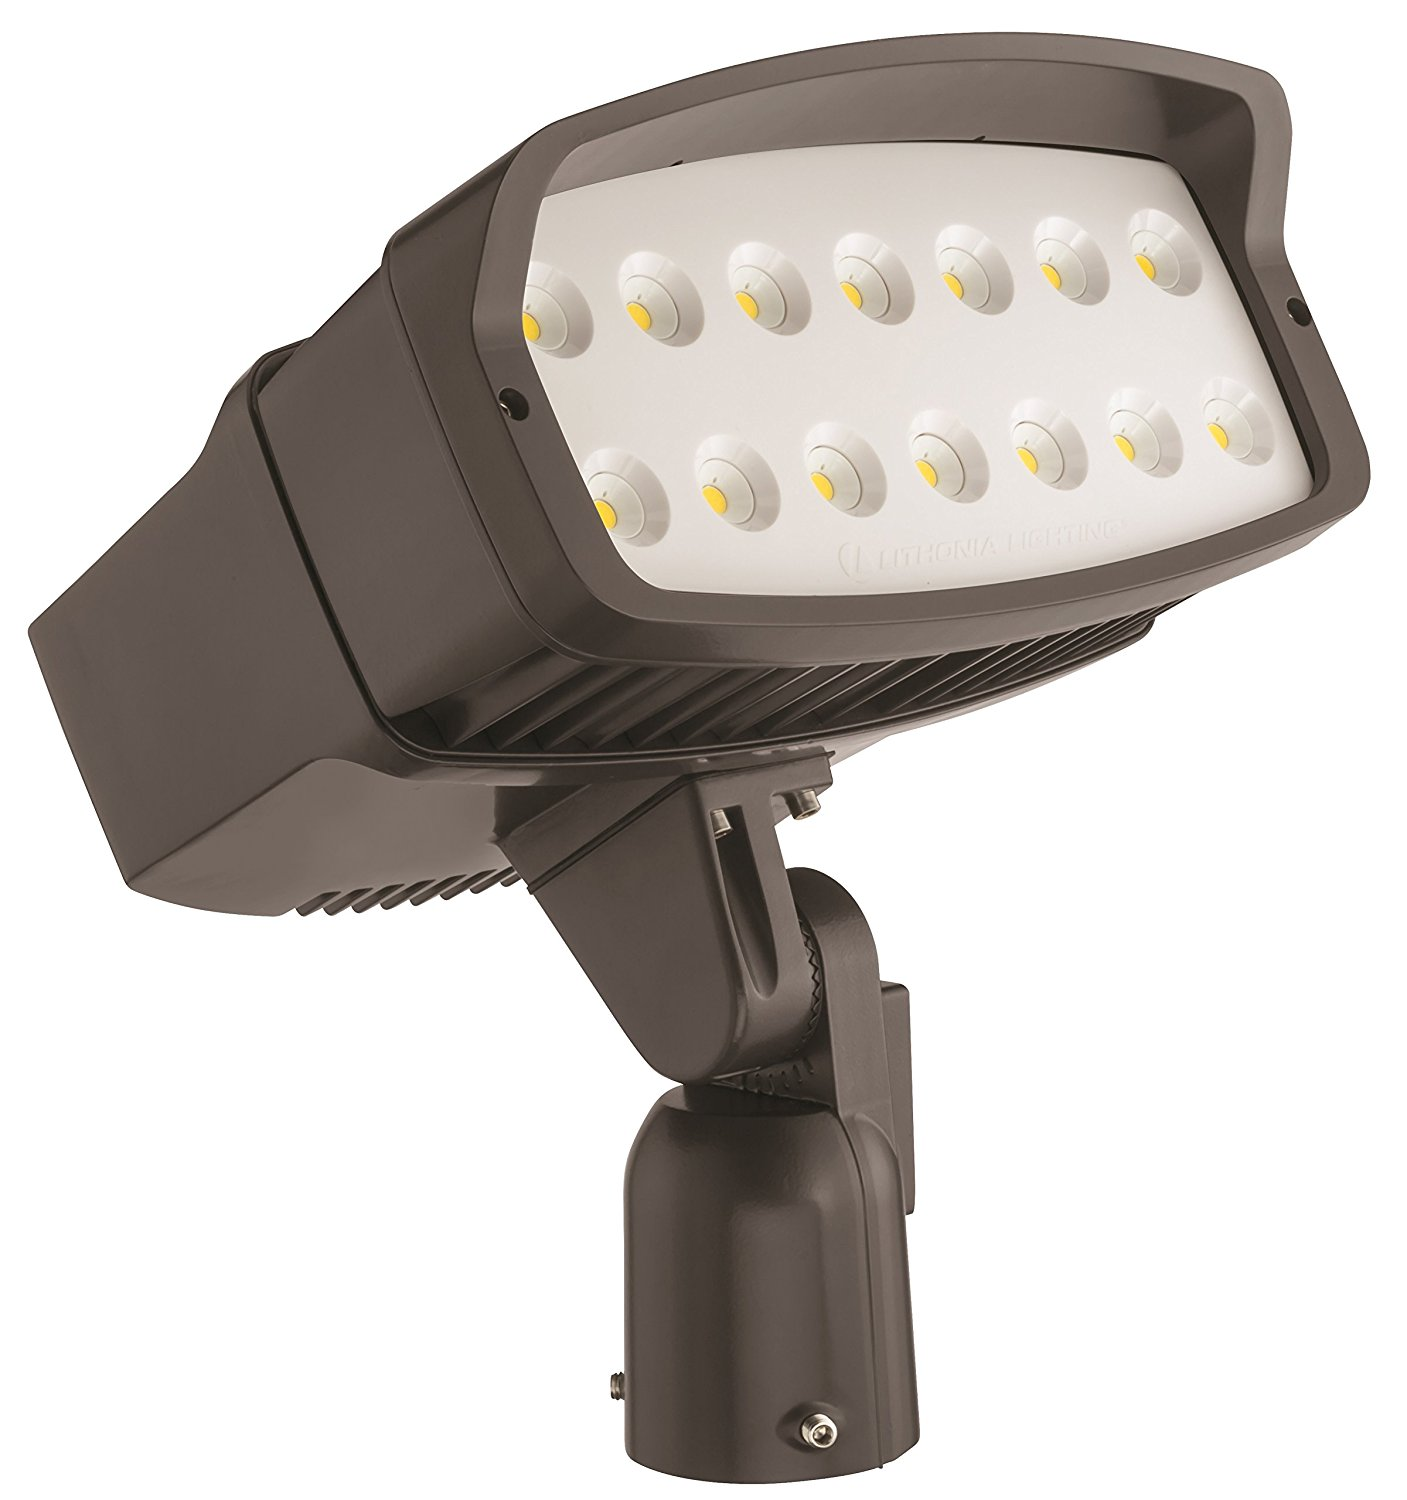 Lithonia Lighting OFL2 LED P2 50K MVOLT IS DDBXD M2 5000K Color Temperature LED Size 2 Floodlight with P2 Performance Package - Slipfitter Mount